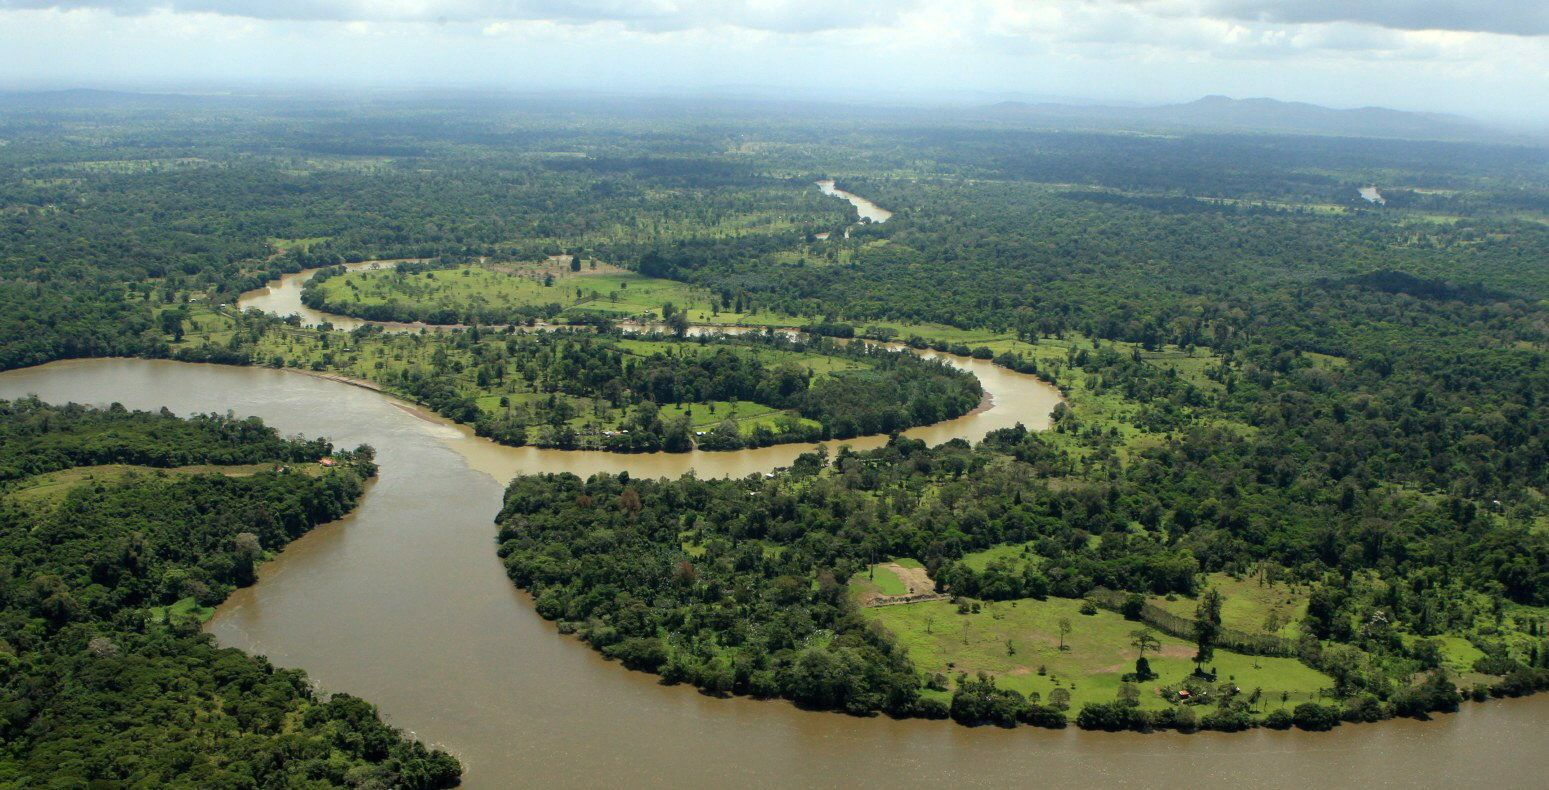 Ramsar Convention on Wetlands inspects conflict areas nicaragua San Juan Fluss